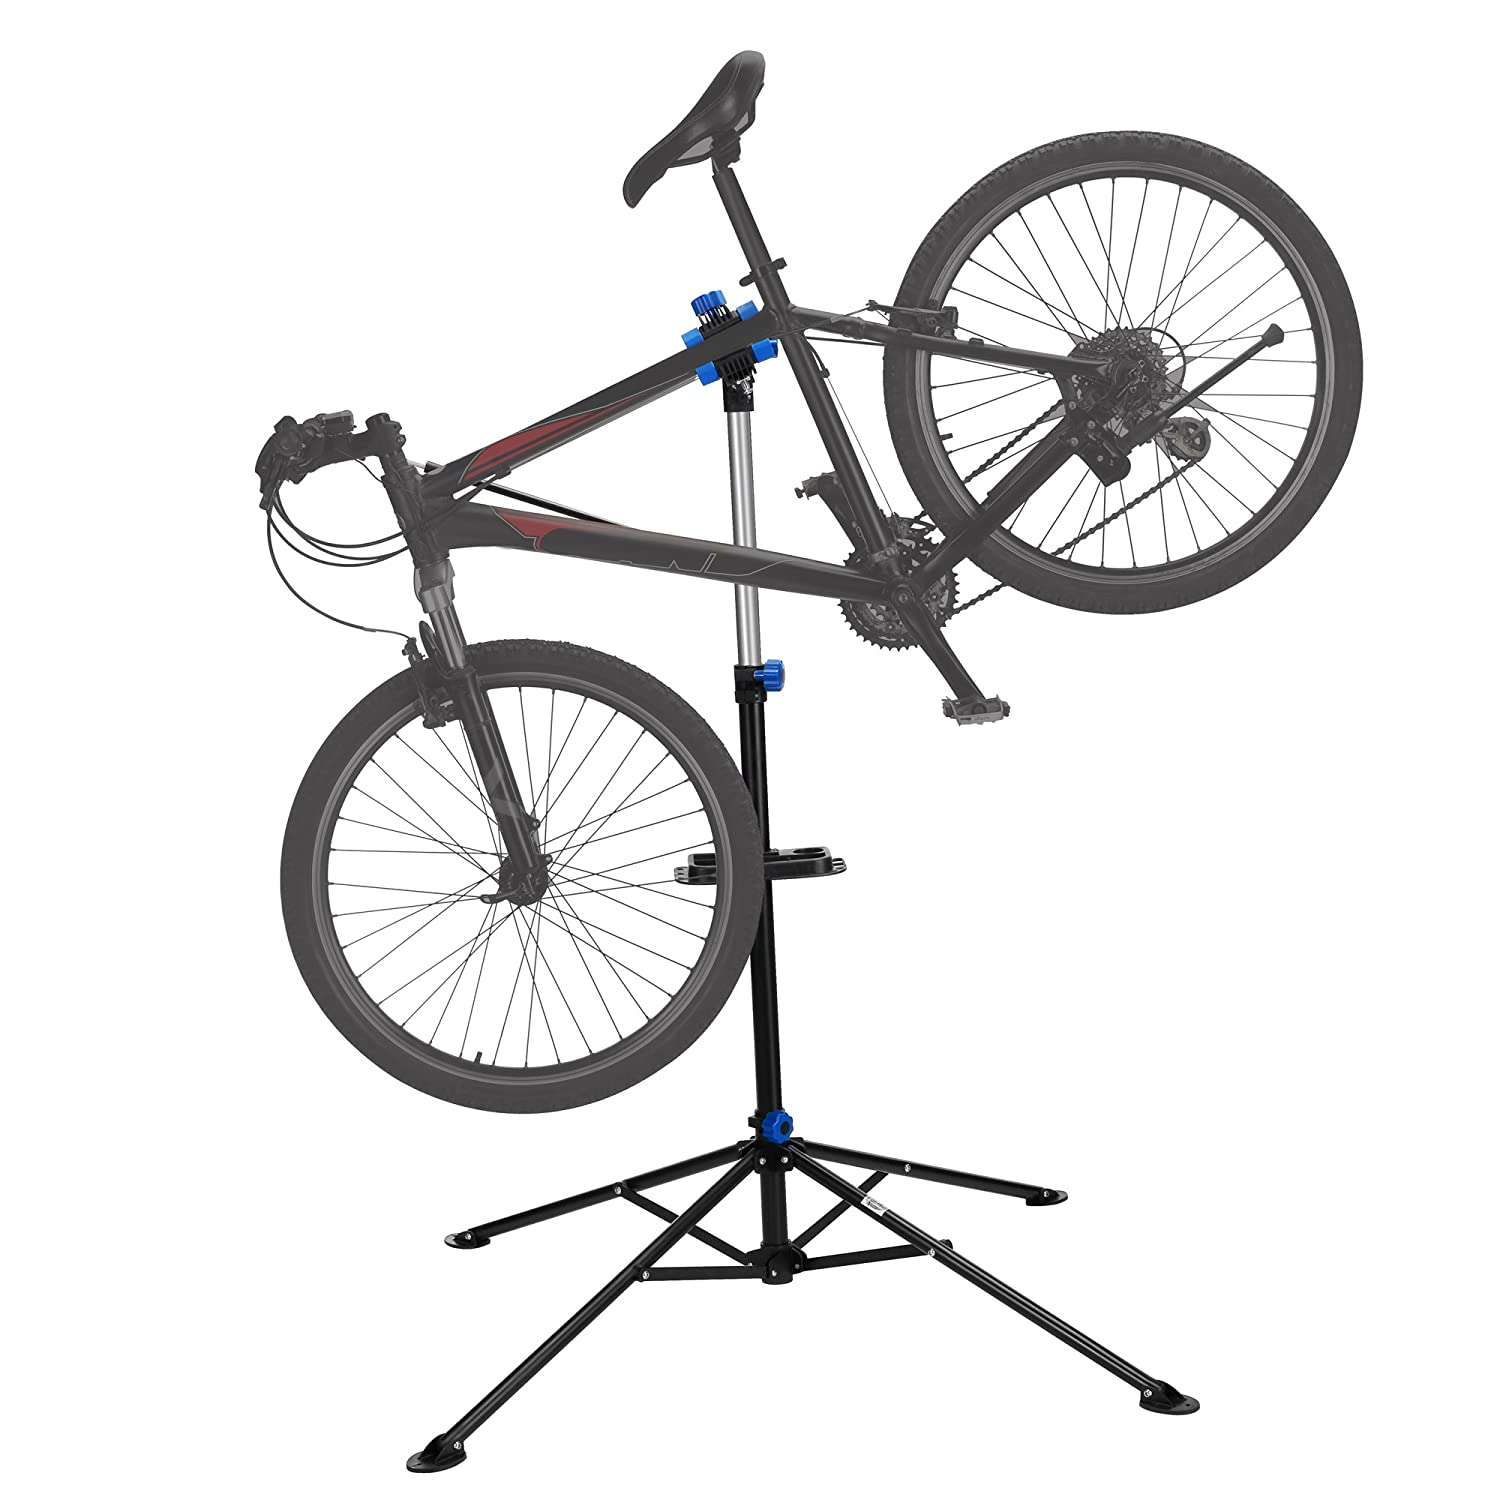 Superb Amazon.com : RAD Cycle Products Pro Bicycle Adjustable Repair Stand Holds  Up To 66 Pounds Or 30 Kg With Ease For Home Or Shop Road Pro Stand : Bike  ...